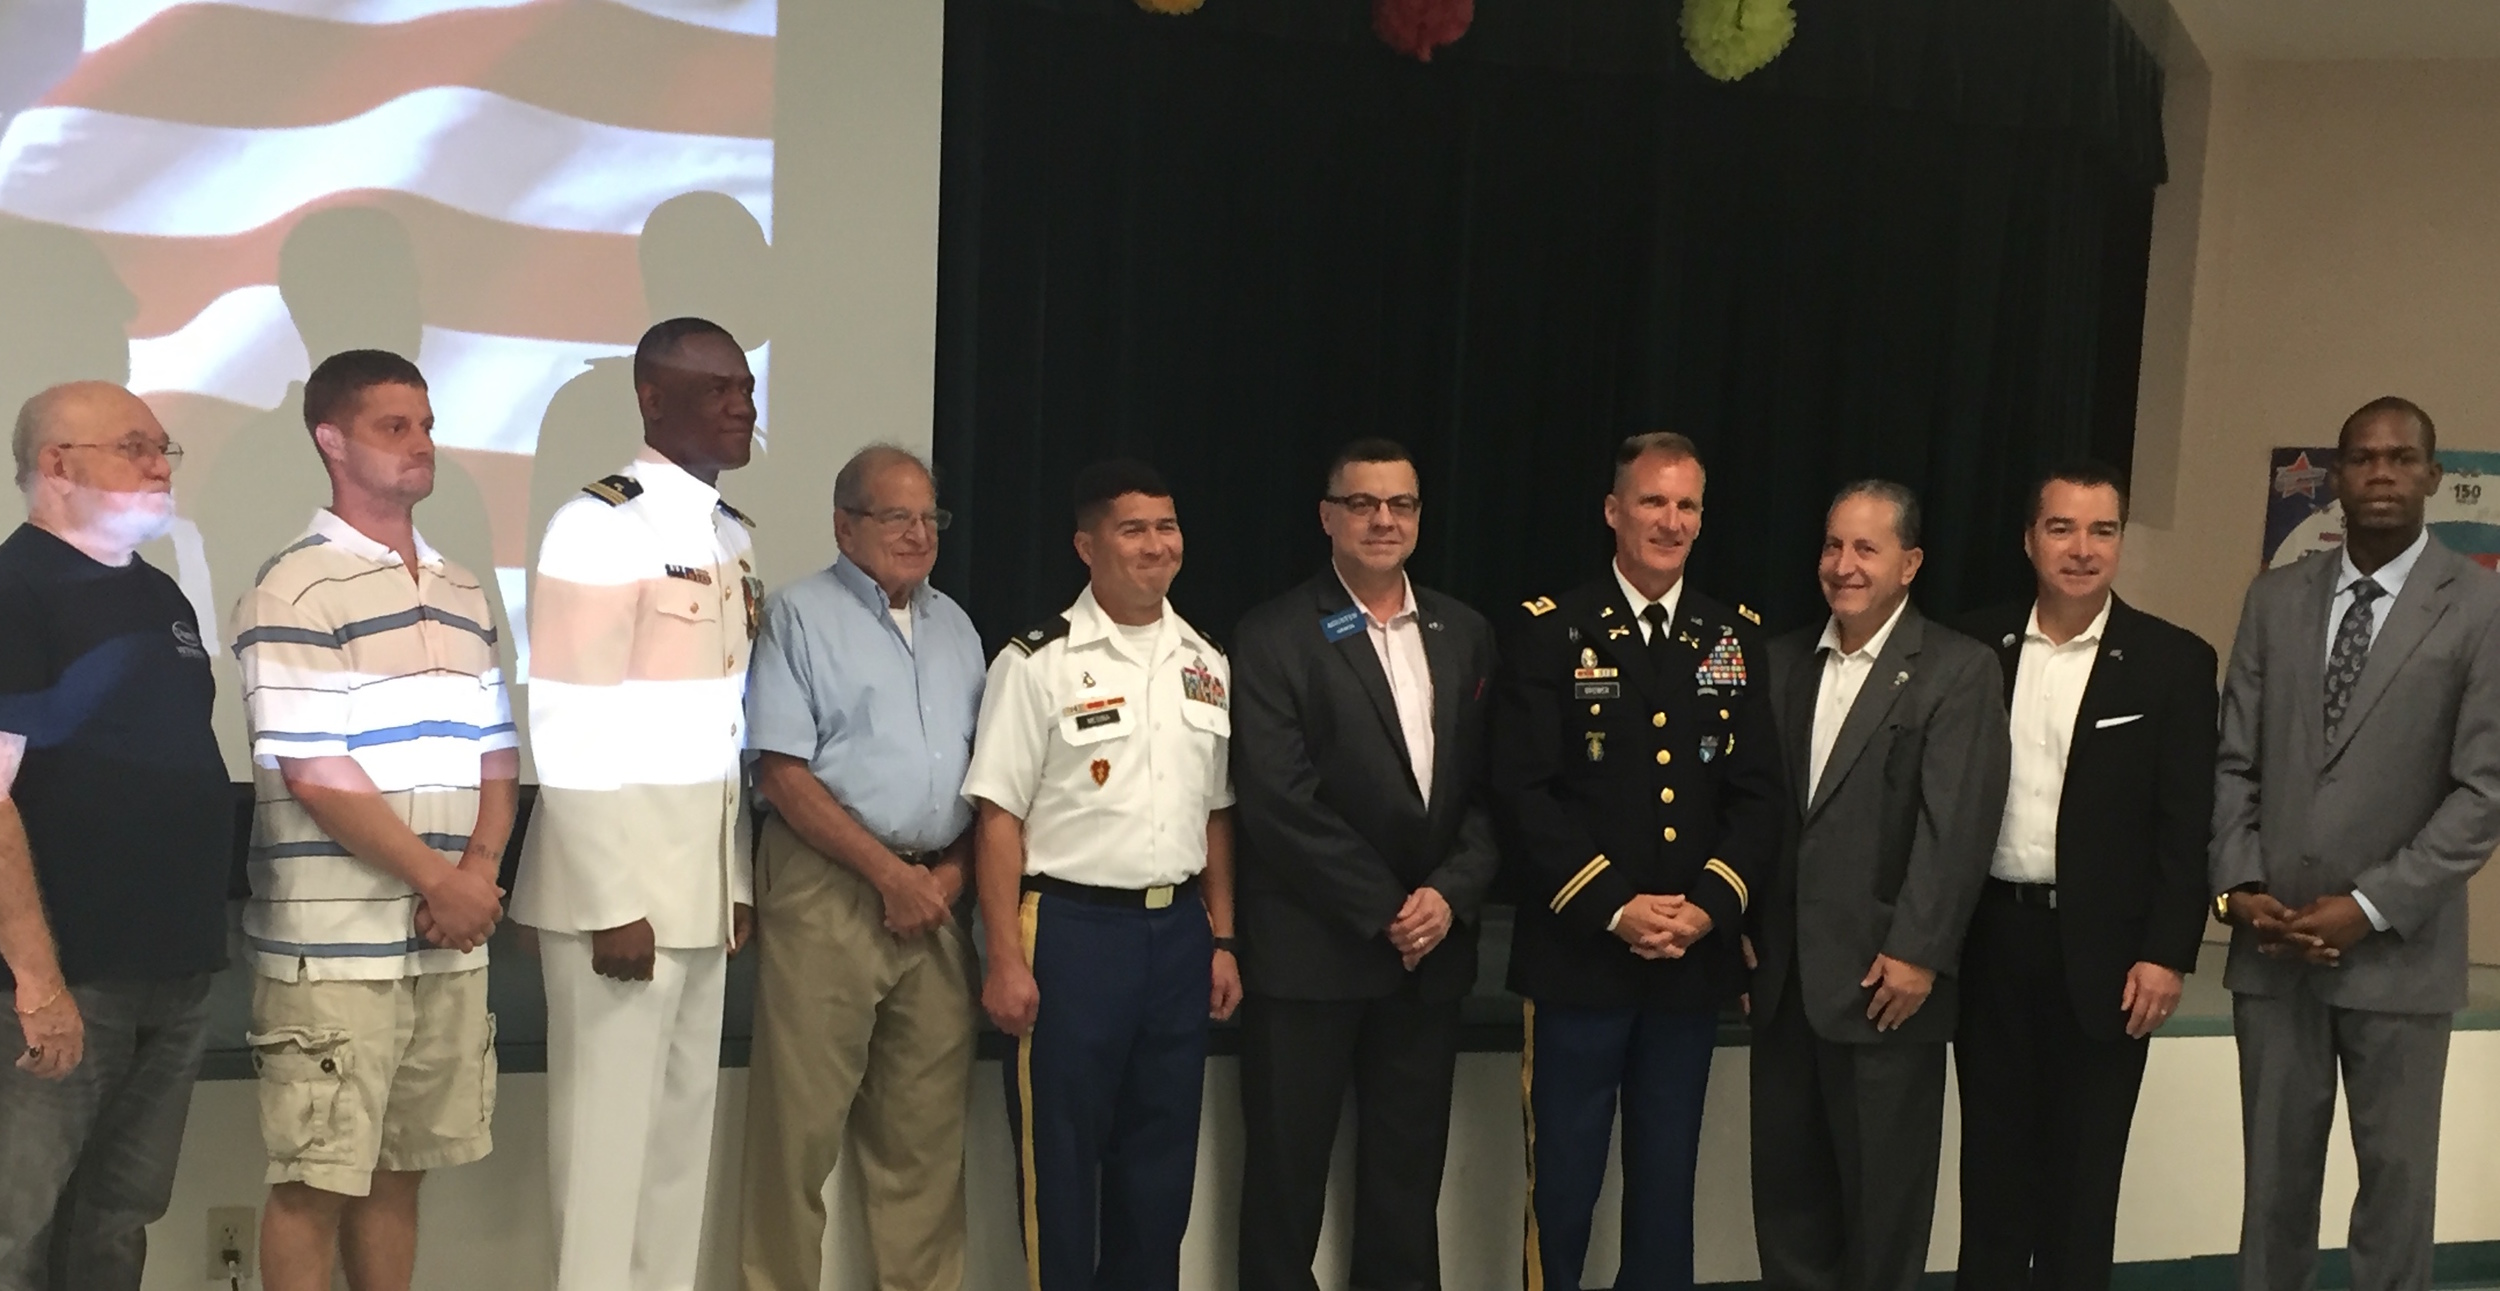 Vietnam, Afghanistan and Iraq veterans and the Mayor of Weston (the Honorable Daniel Stermer), Weston City Commissioner Jim Norton and Mr. Richard Nelson of Senator Marco Rubio's office